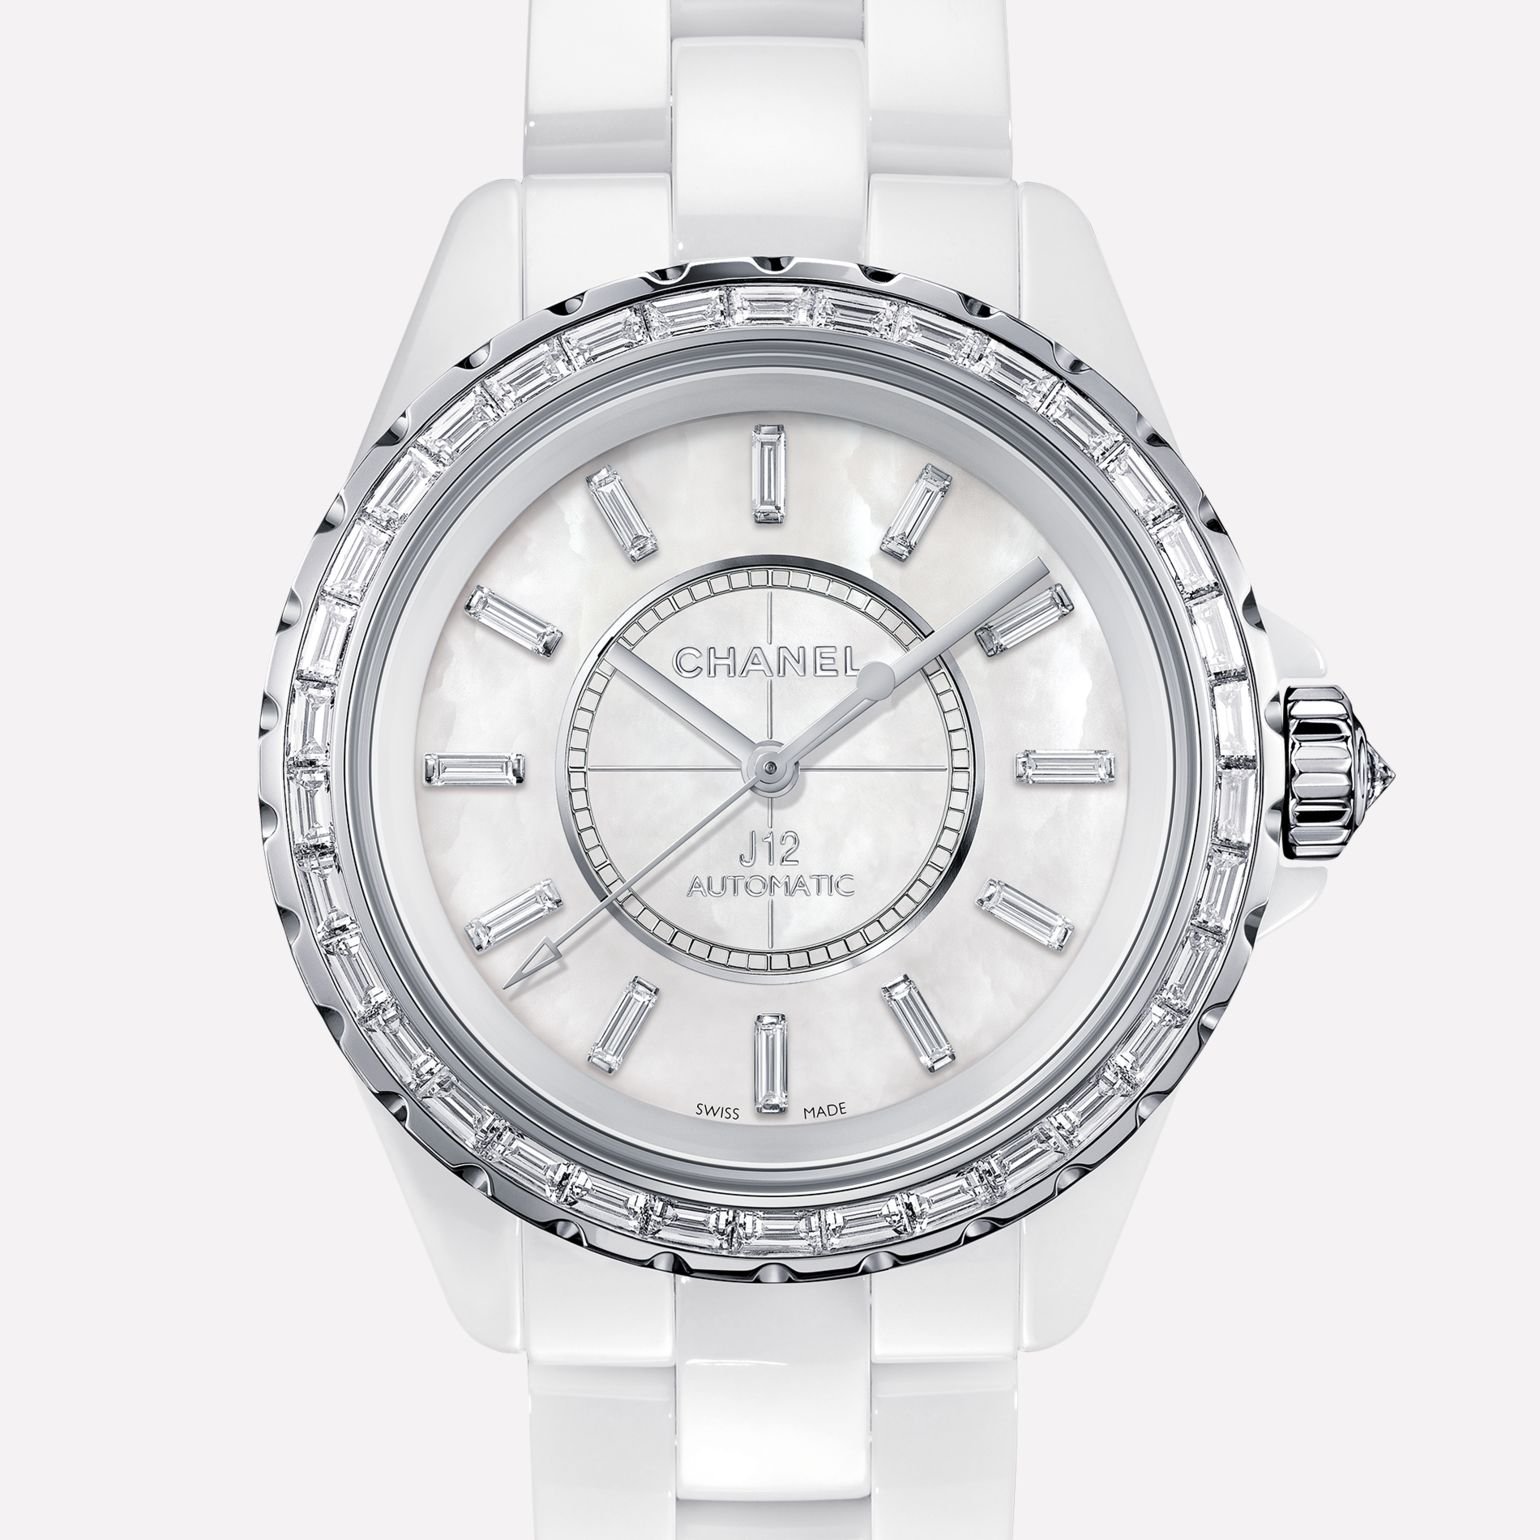 J12 Jewelry Watch White highly-resistant ceramic and white gold, baguette-cut diamond bezel and indicators